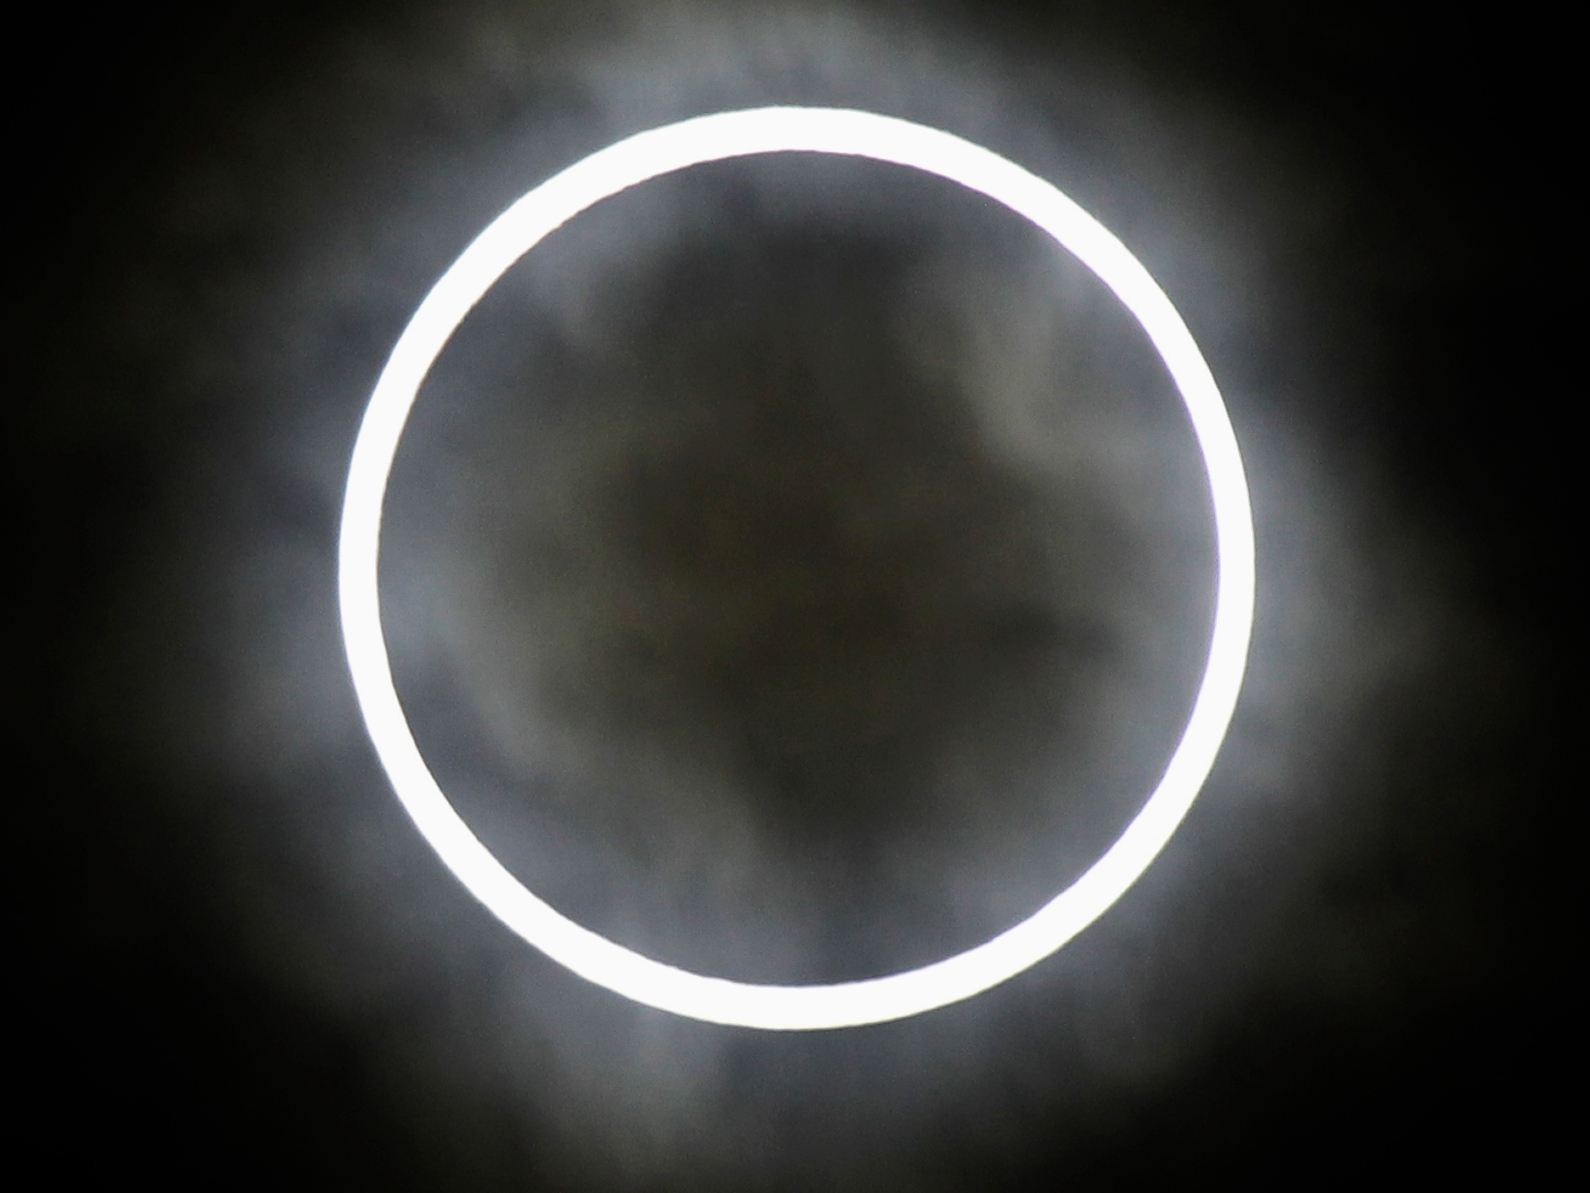 How to watch the 'ring of fire' solar eclipse – Yahoo News Australia